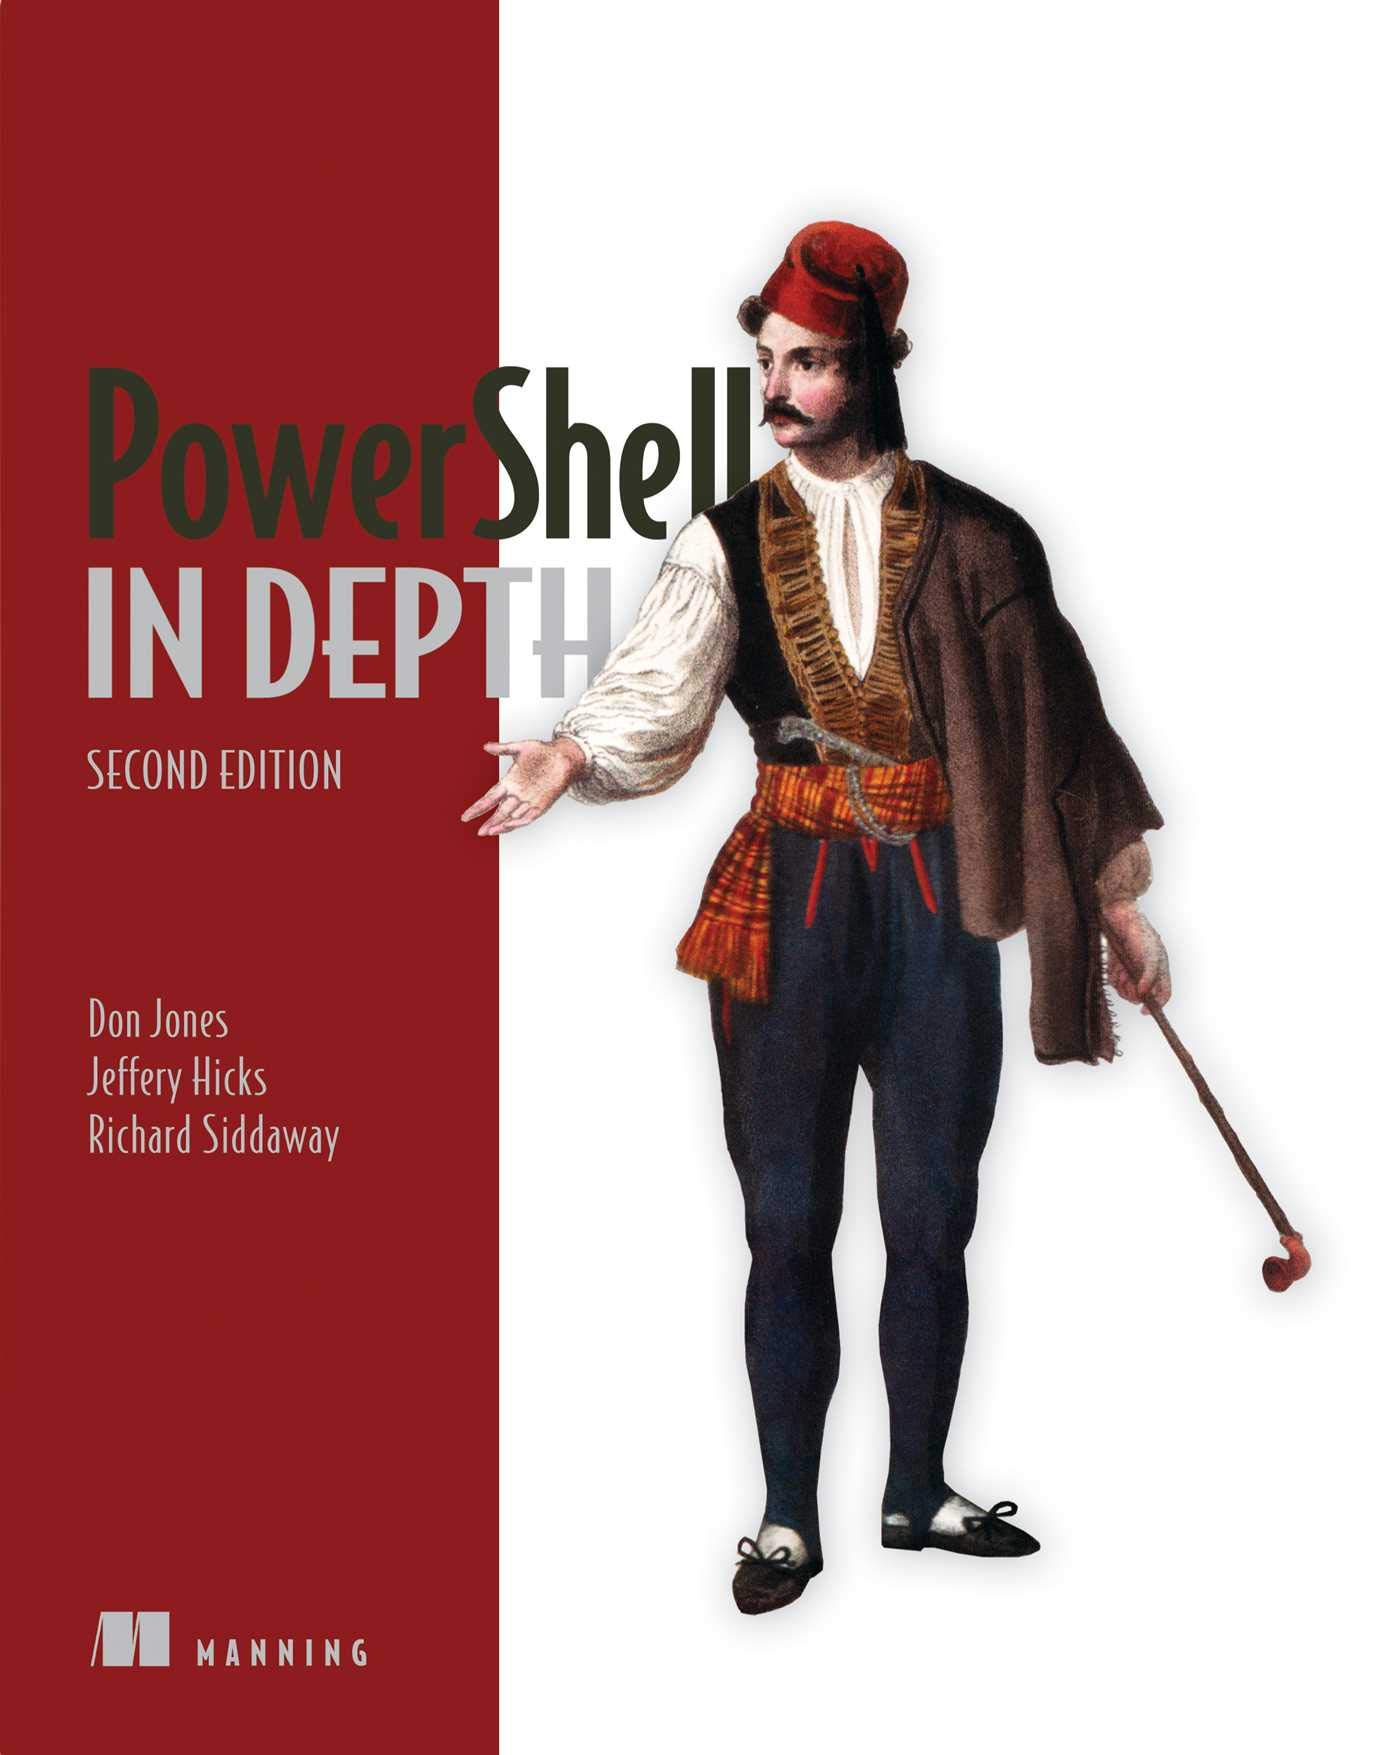 Image OfPowerShell In Depth